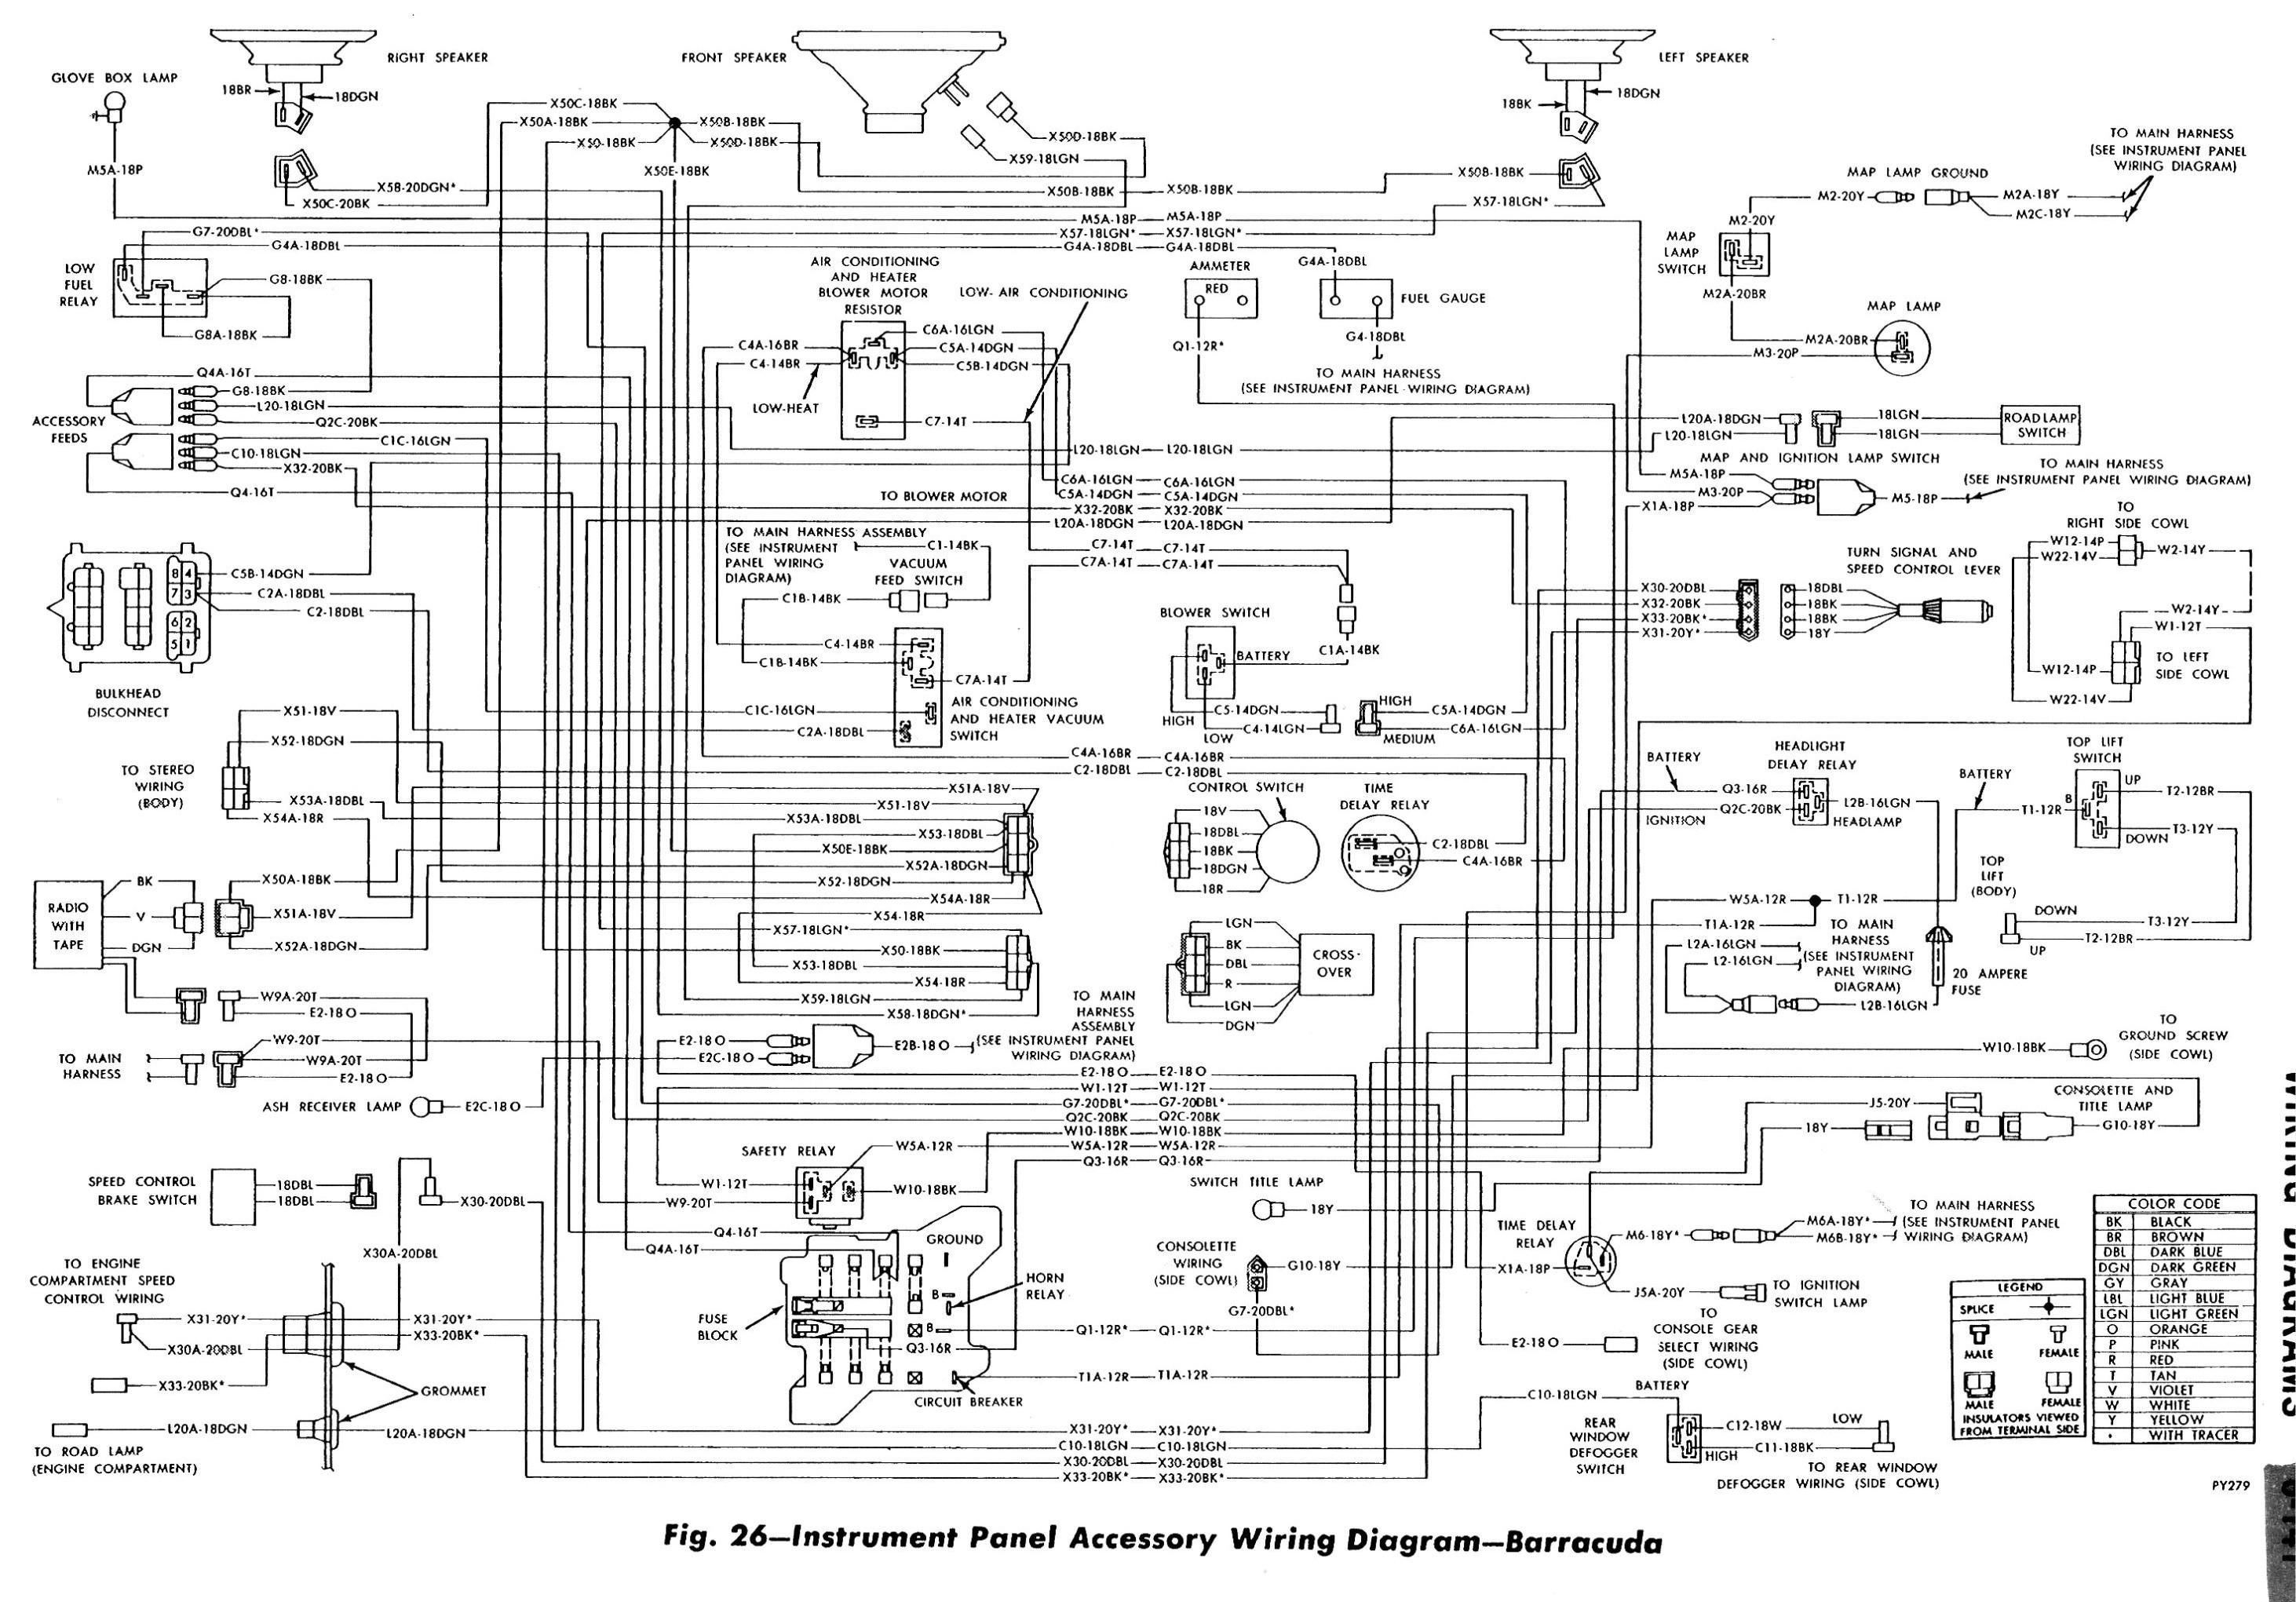 1971 plymouth roadrunner wiring diagram